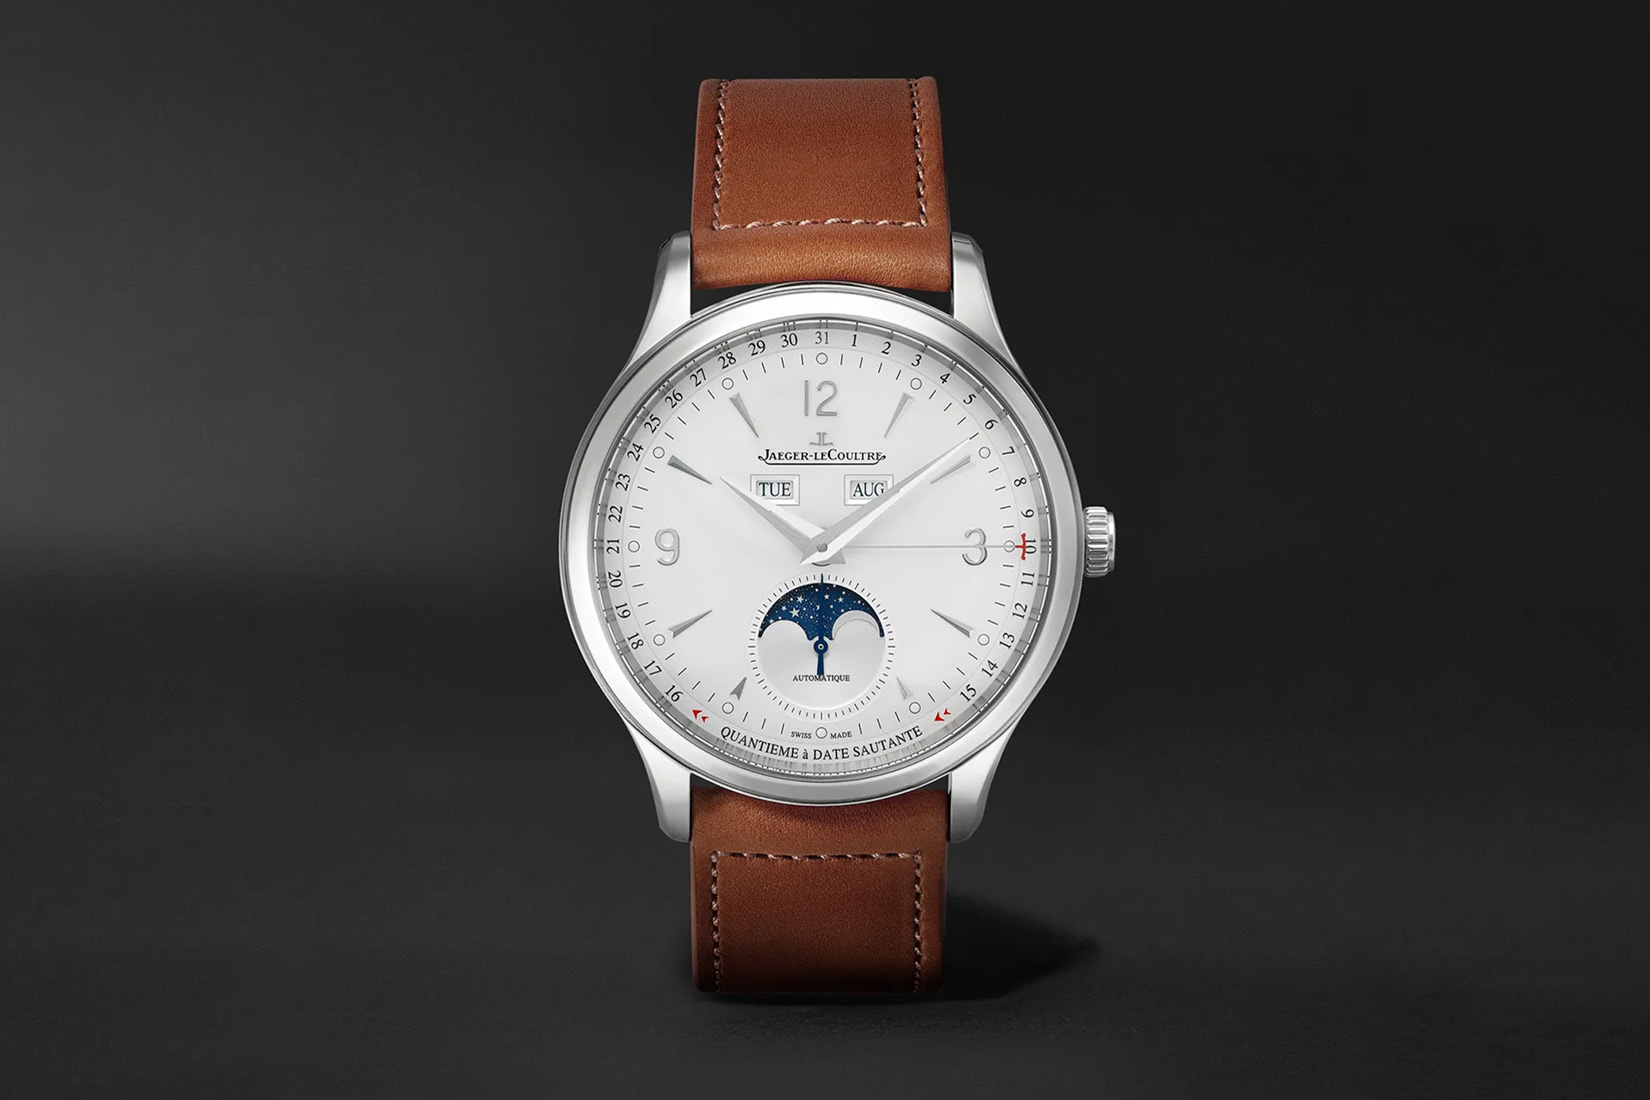 jaeger lecoultre style guide master control calendar jlc watch luxe digital